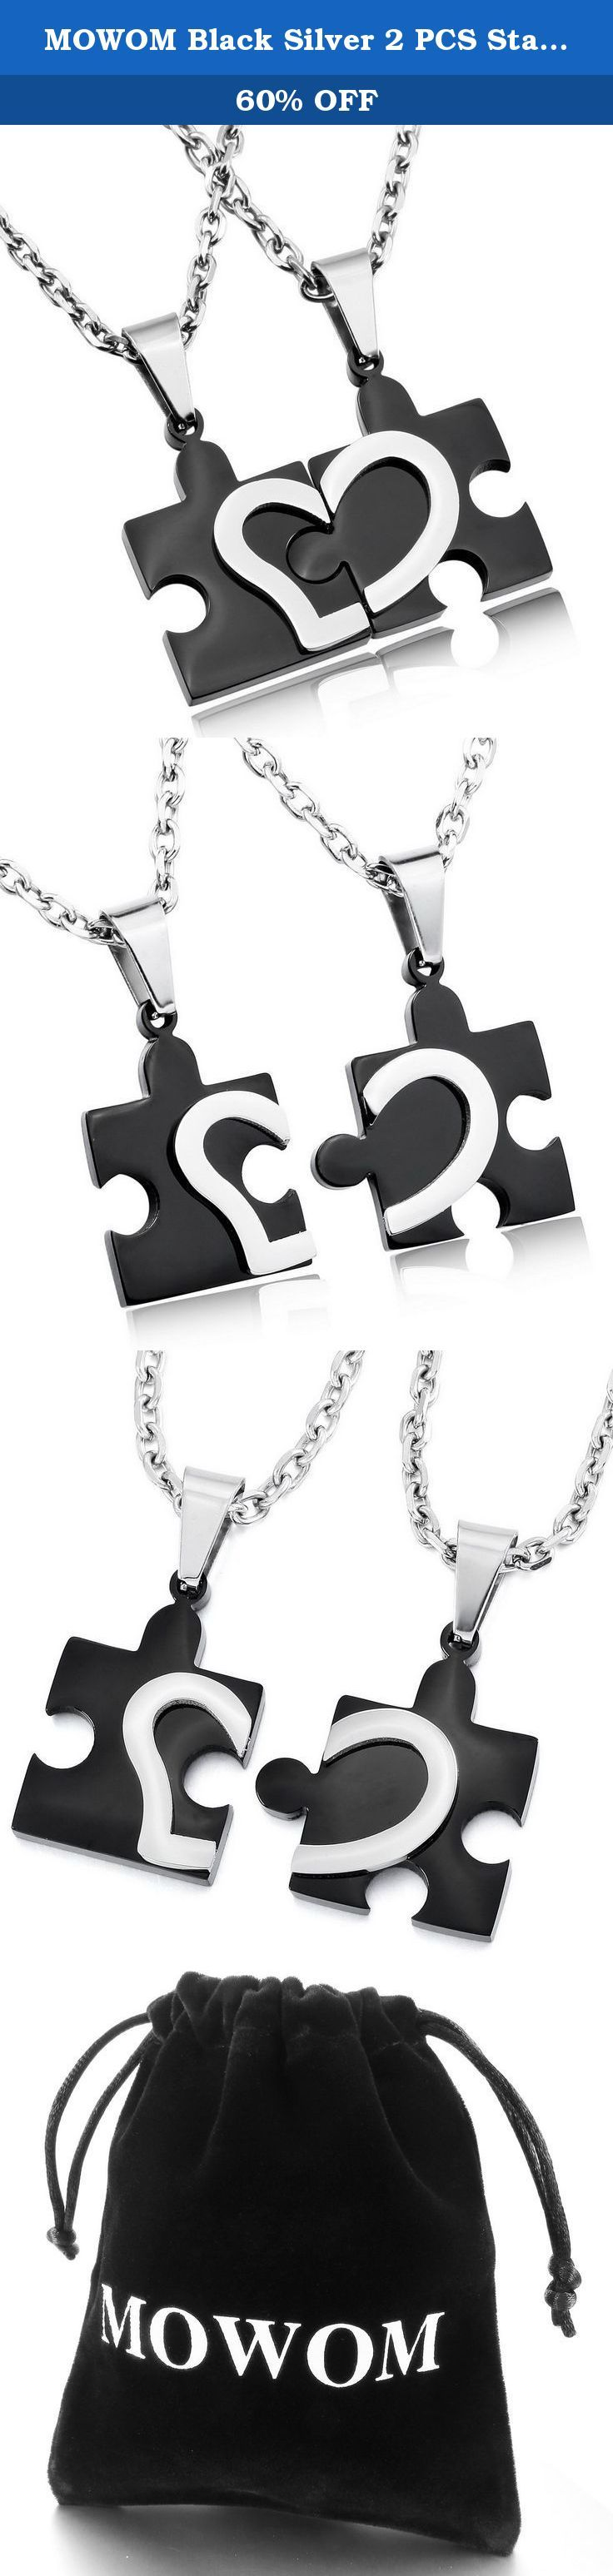 MOWOM Black Silver 2 PCS Stainless Steel Pendant Necklace Jigsaw Puzzle Heart Love Couples. Black Silver 2 PCS Stainless Steel Pendant Necklace Jigsaw Puzzle Heart Love Couples.